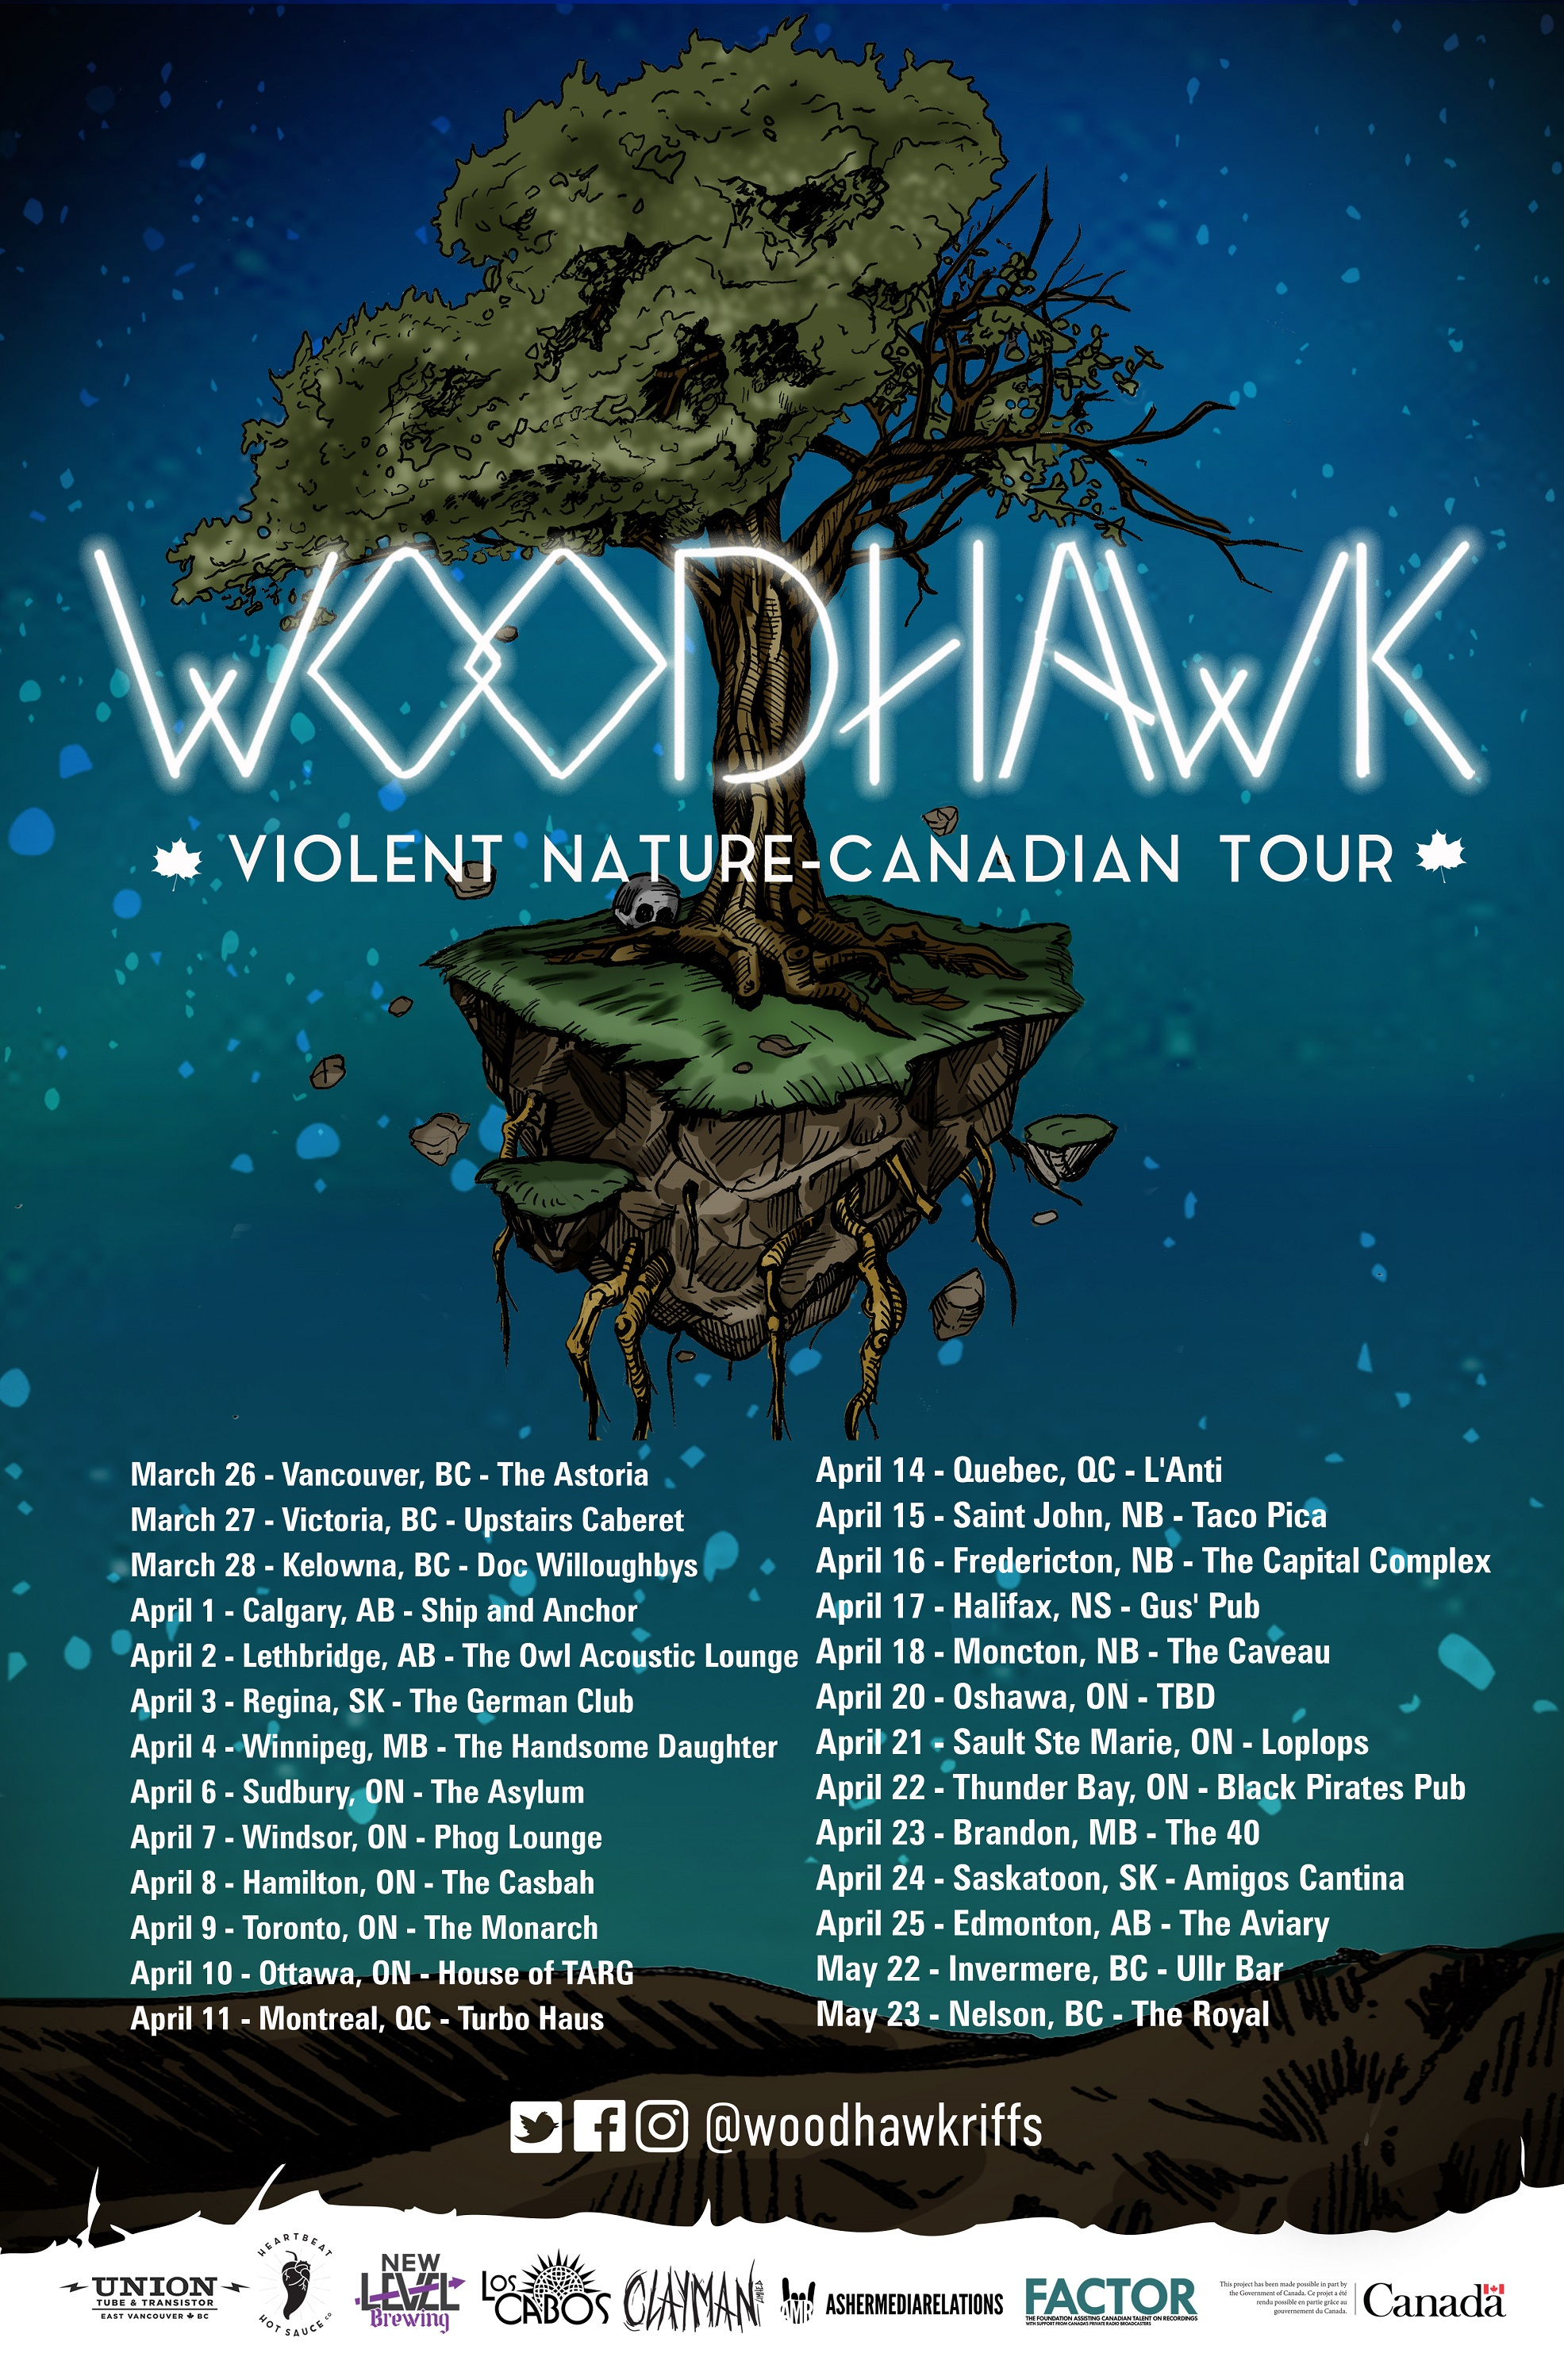 woodhawk canadian tour